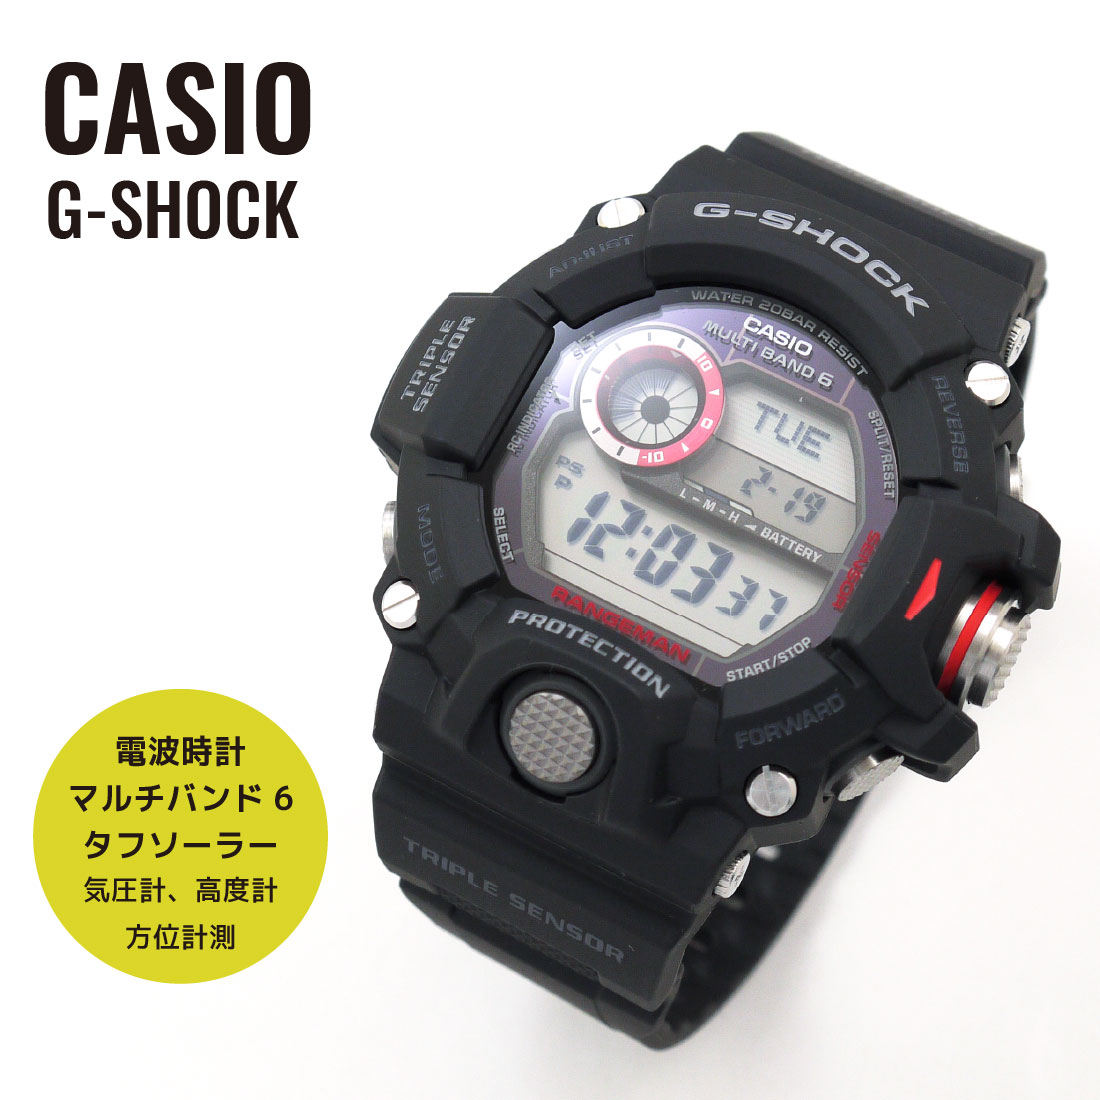 sale retailer 56296 38191 CASIO Casio G-SHOCK G- shock RANGEMAN range man GW-9400-1 black watch men